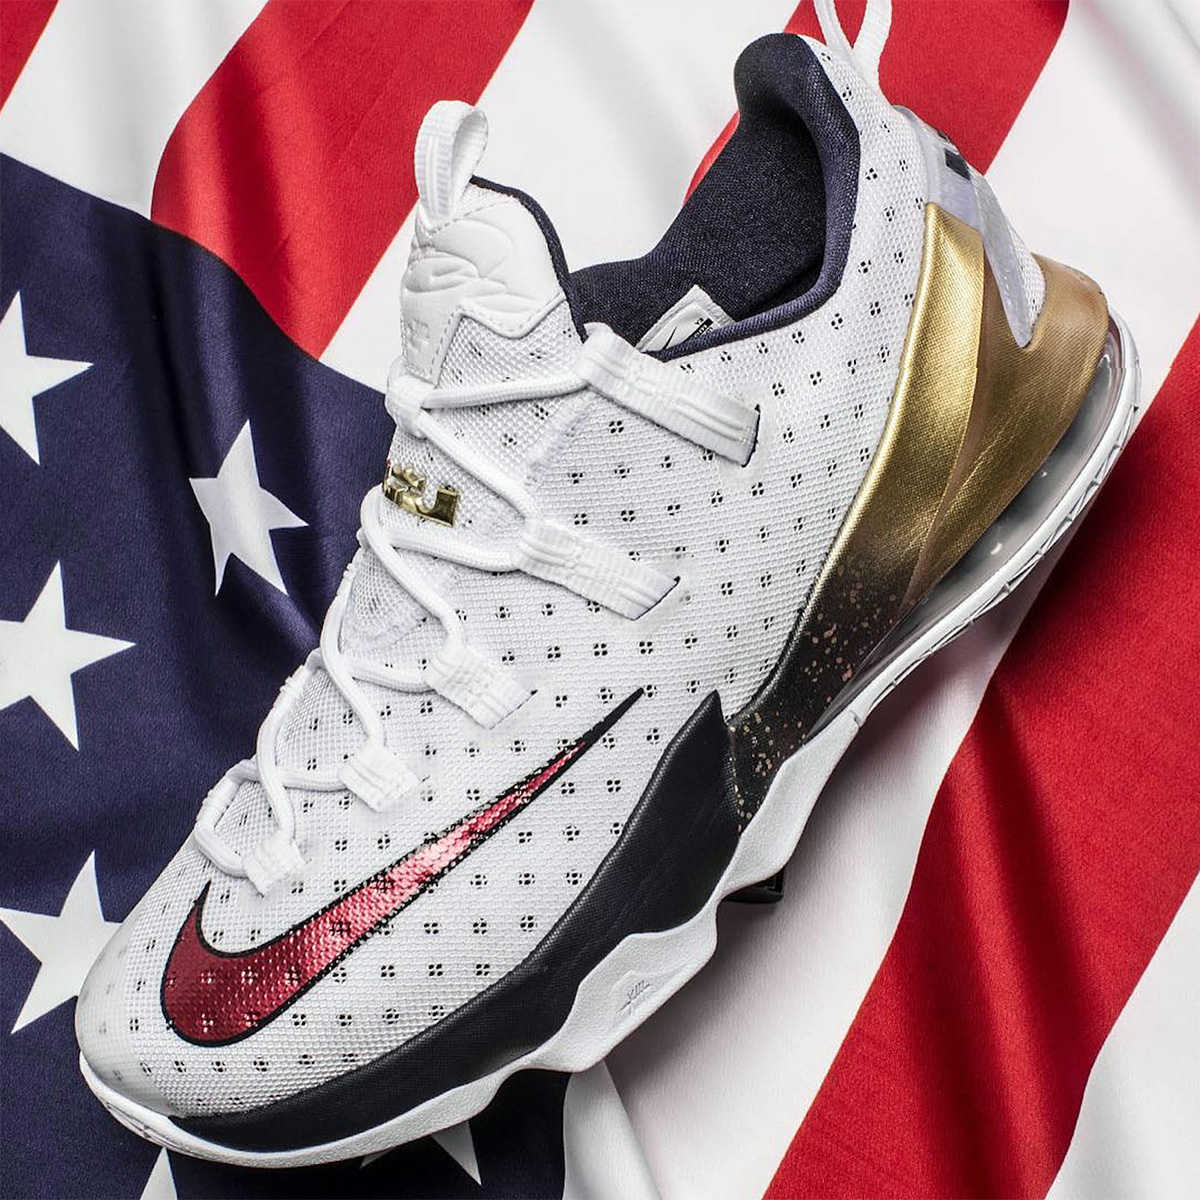 651943f5c5 Low - Related Images: Nike LeBron 13 Low Olympic Gold Medal Sneaker Bar  Detroit